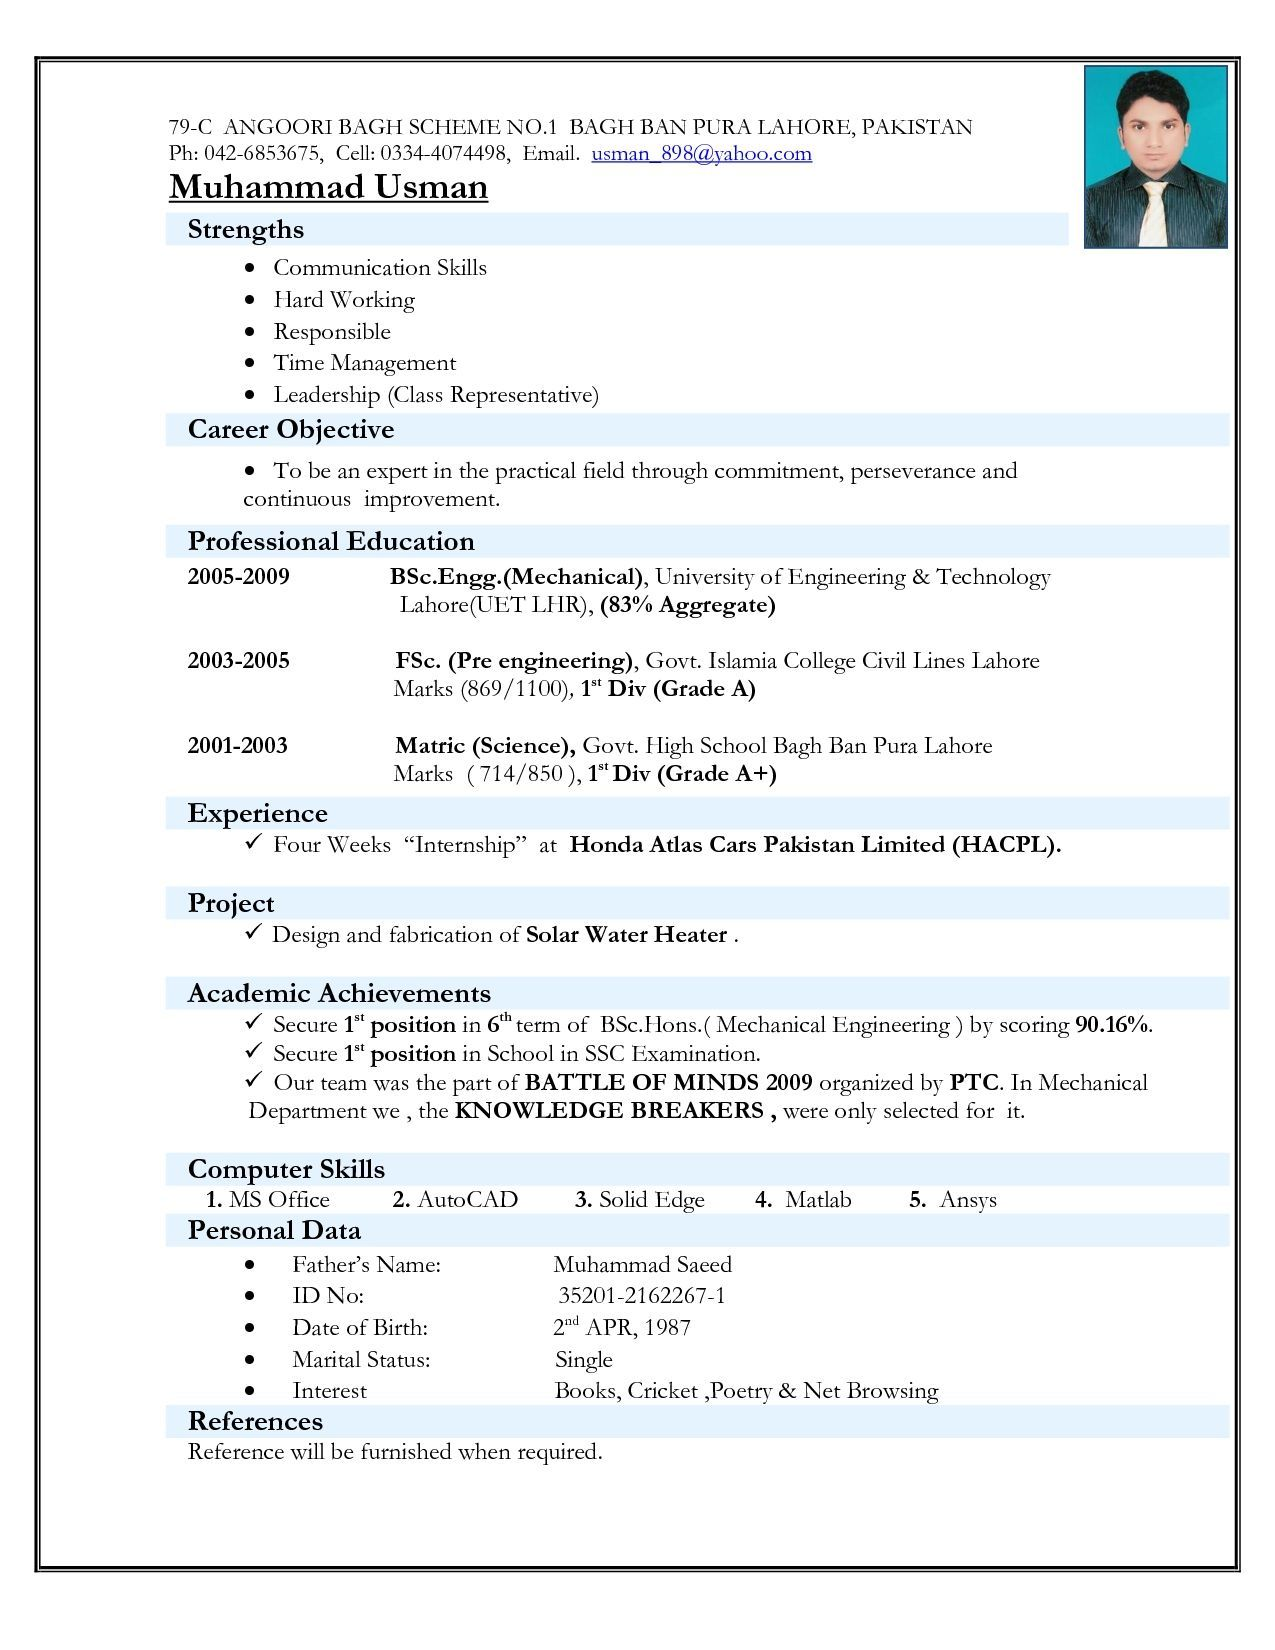 Top 5 Resume Formats For Freshers Resume format download